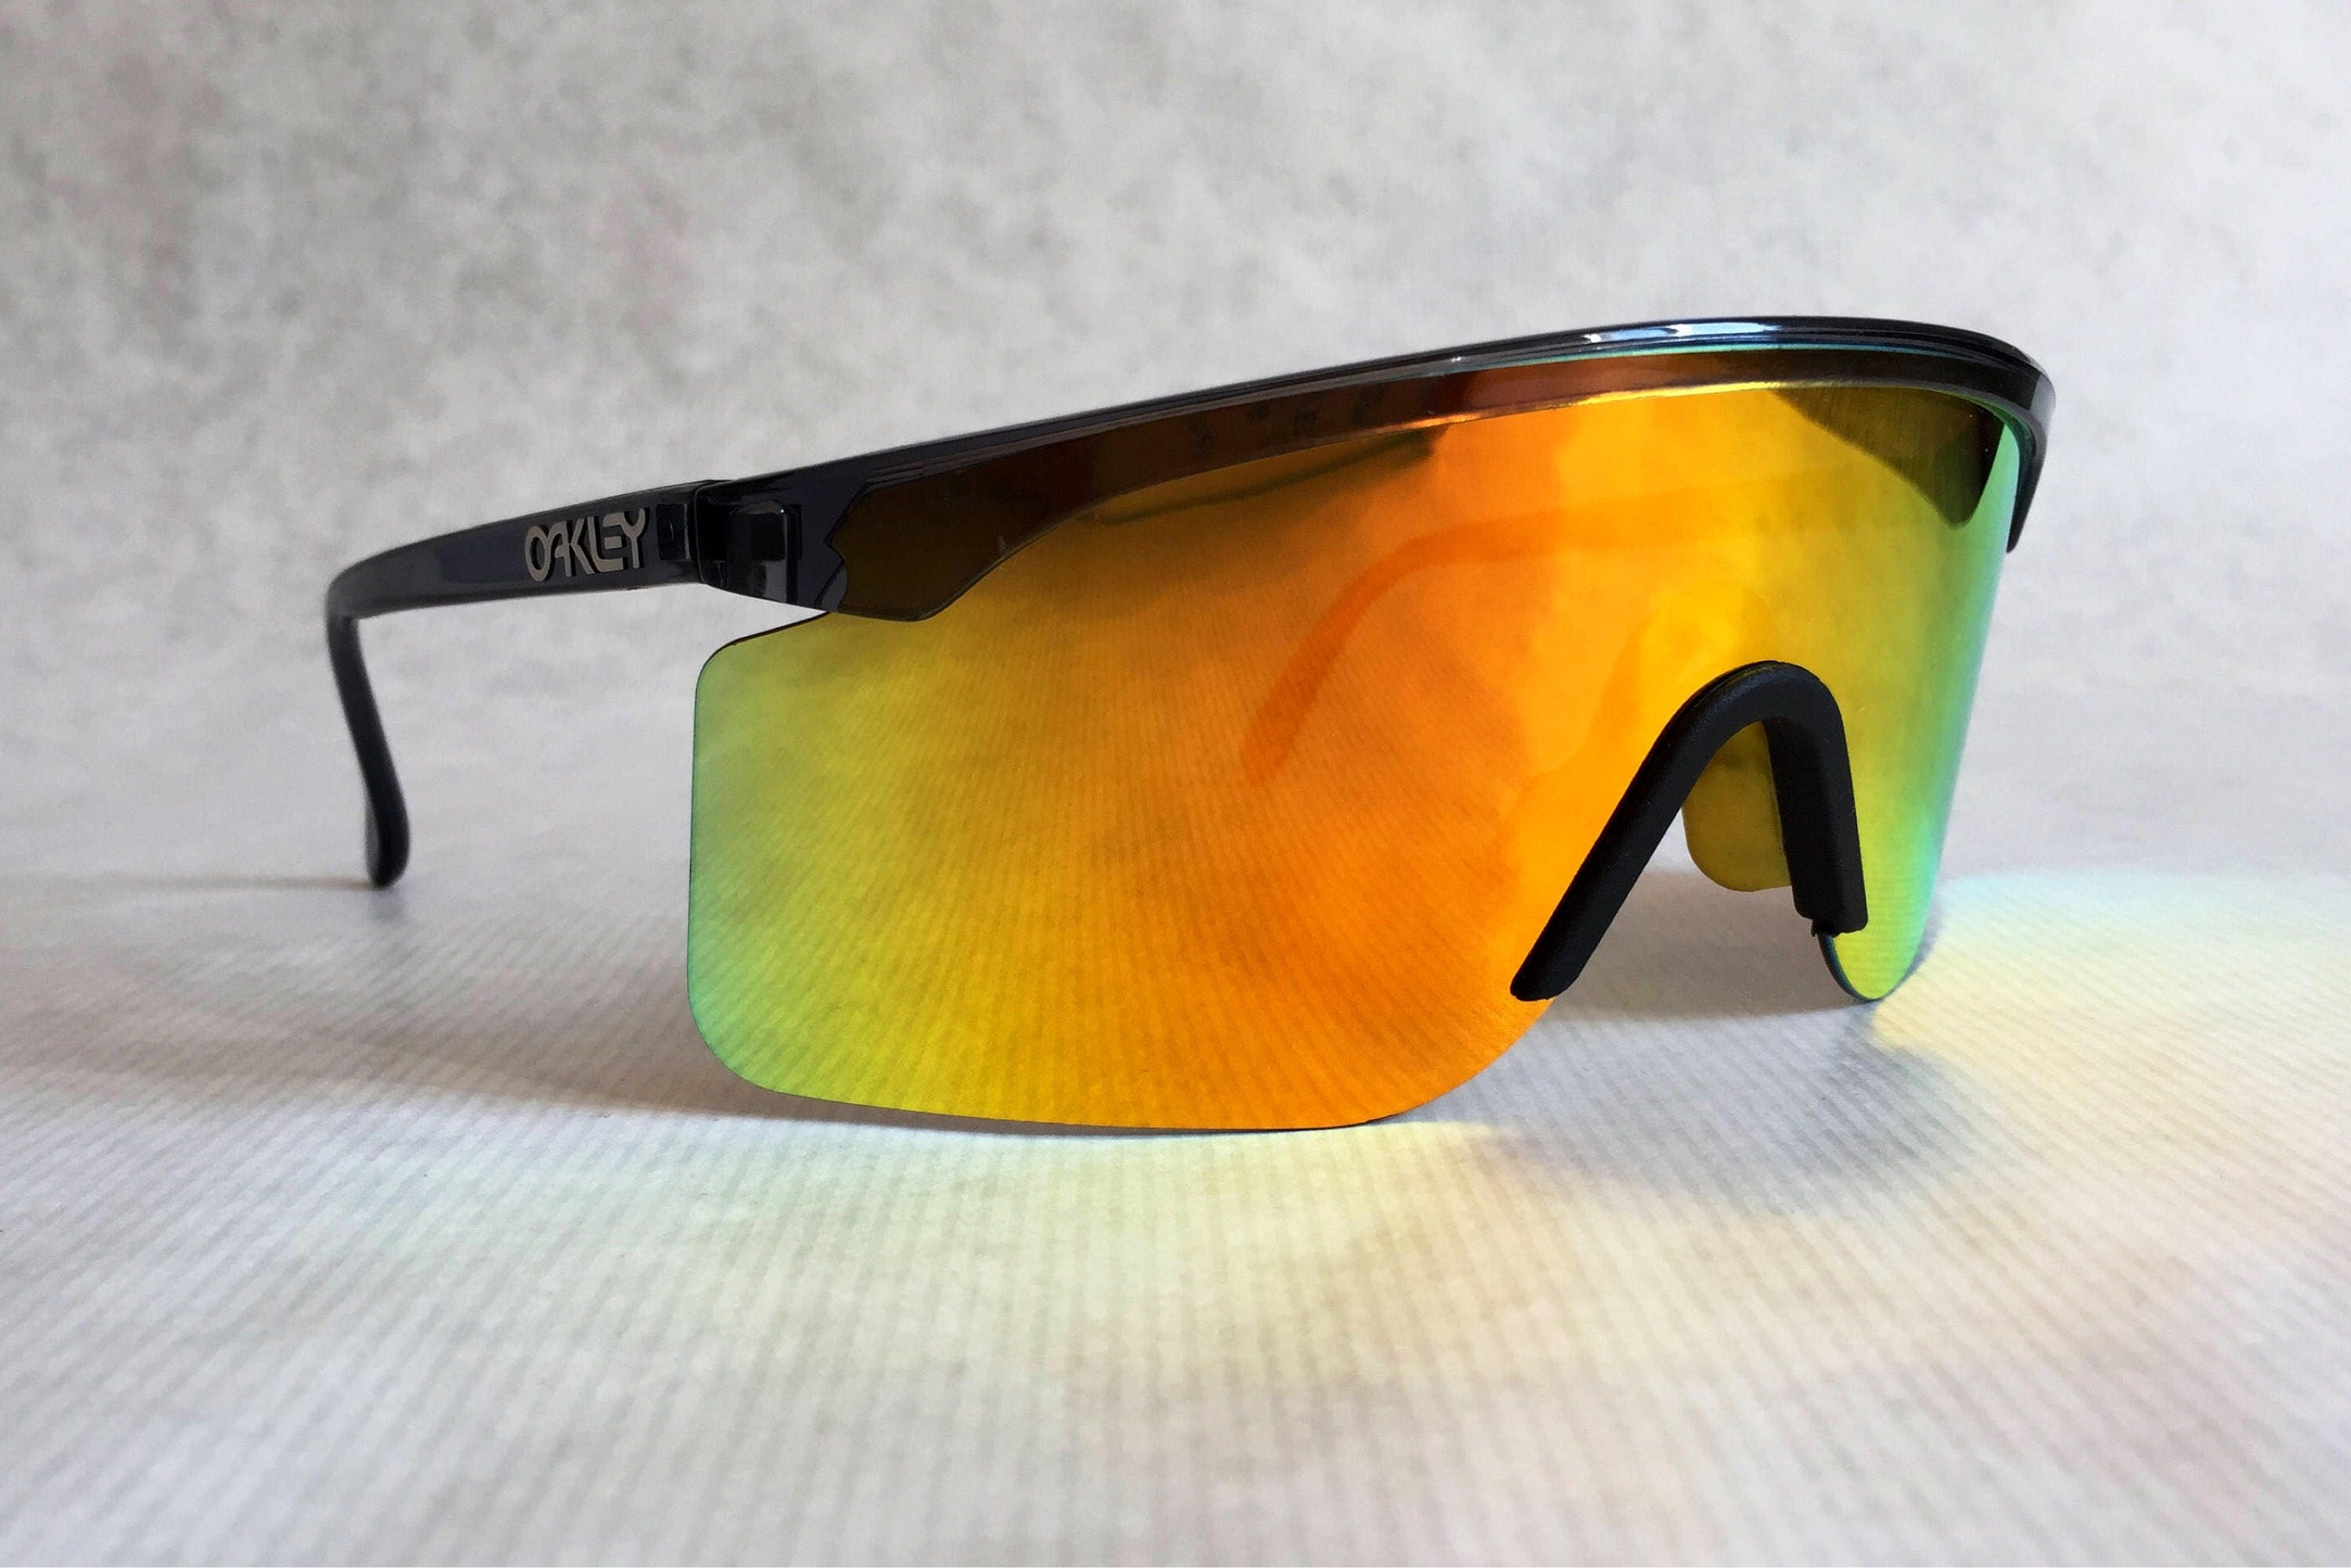 f65047ab73 Oakley Blades® 1988 Vintage Sunglasses Full Set New Unworn Deadstock  including Extra Blade®. gallery photo ...